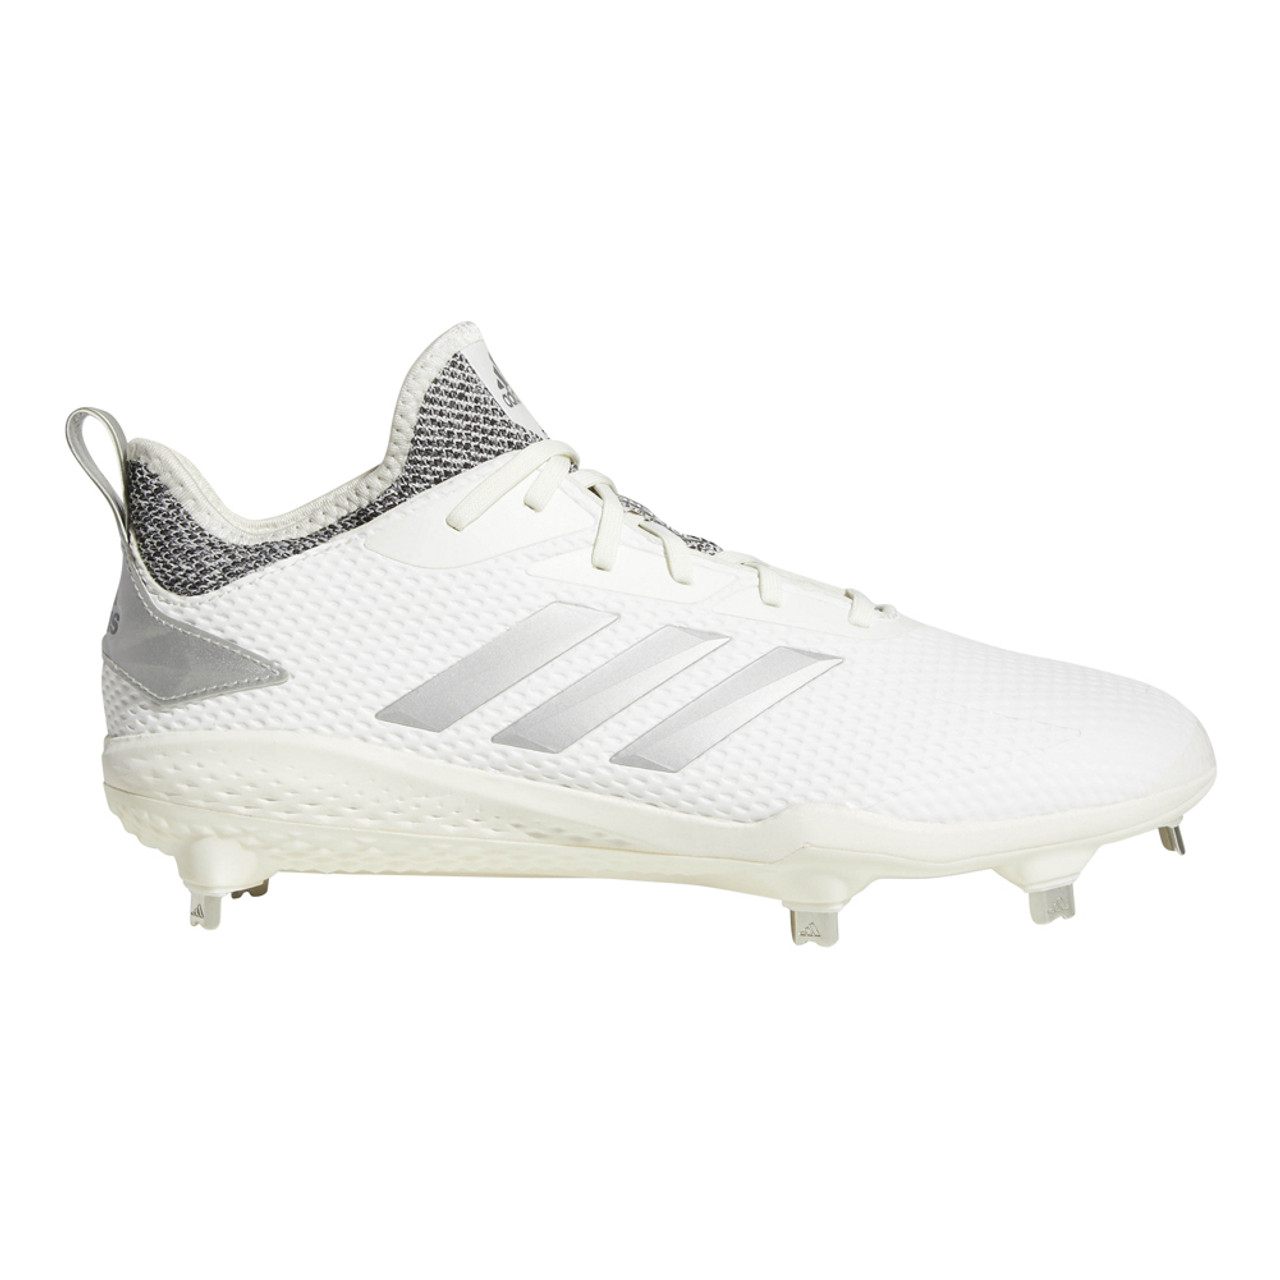 pretty nice 36995 6119e Adidas Men s Adizero Afterburner V Baseball Cleat White Grey - Shop now    Shoolu.